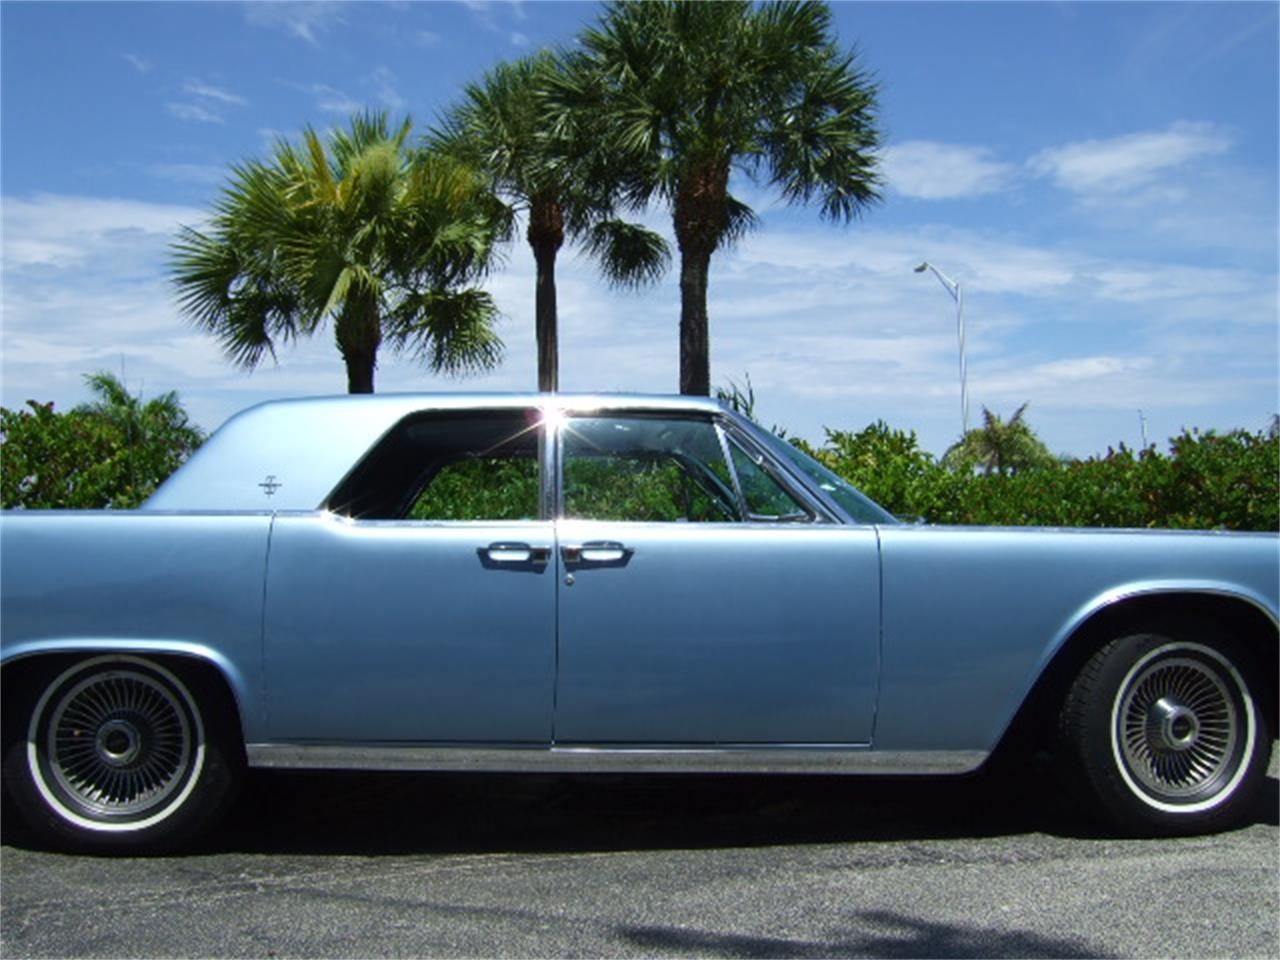 1962 Lincoln Continental (CC-1162157) for sale in Lantana, Florida